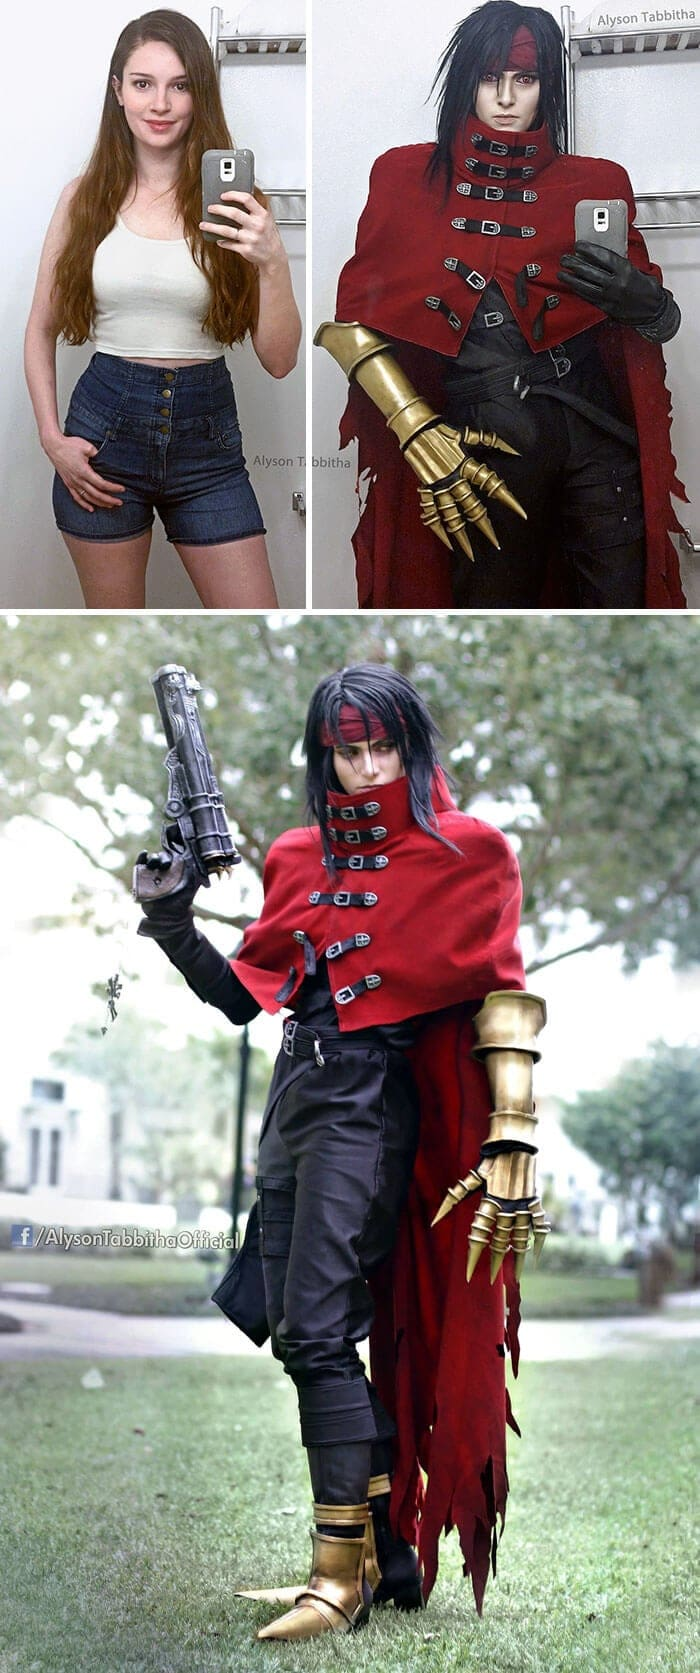 video game anime cosplay alyson tabbitha fy 7 - This Cosplayer Does a Great Job At Transforming Herself Into Literally Anyone